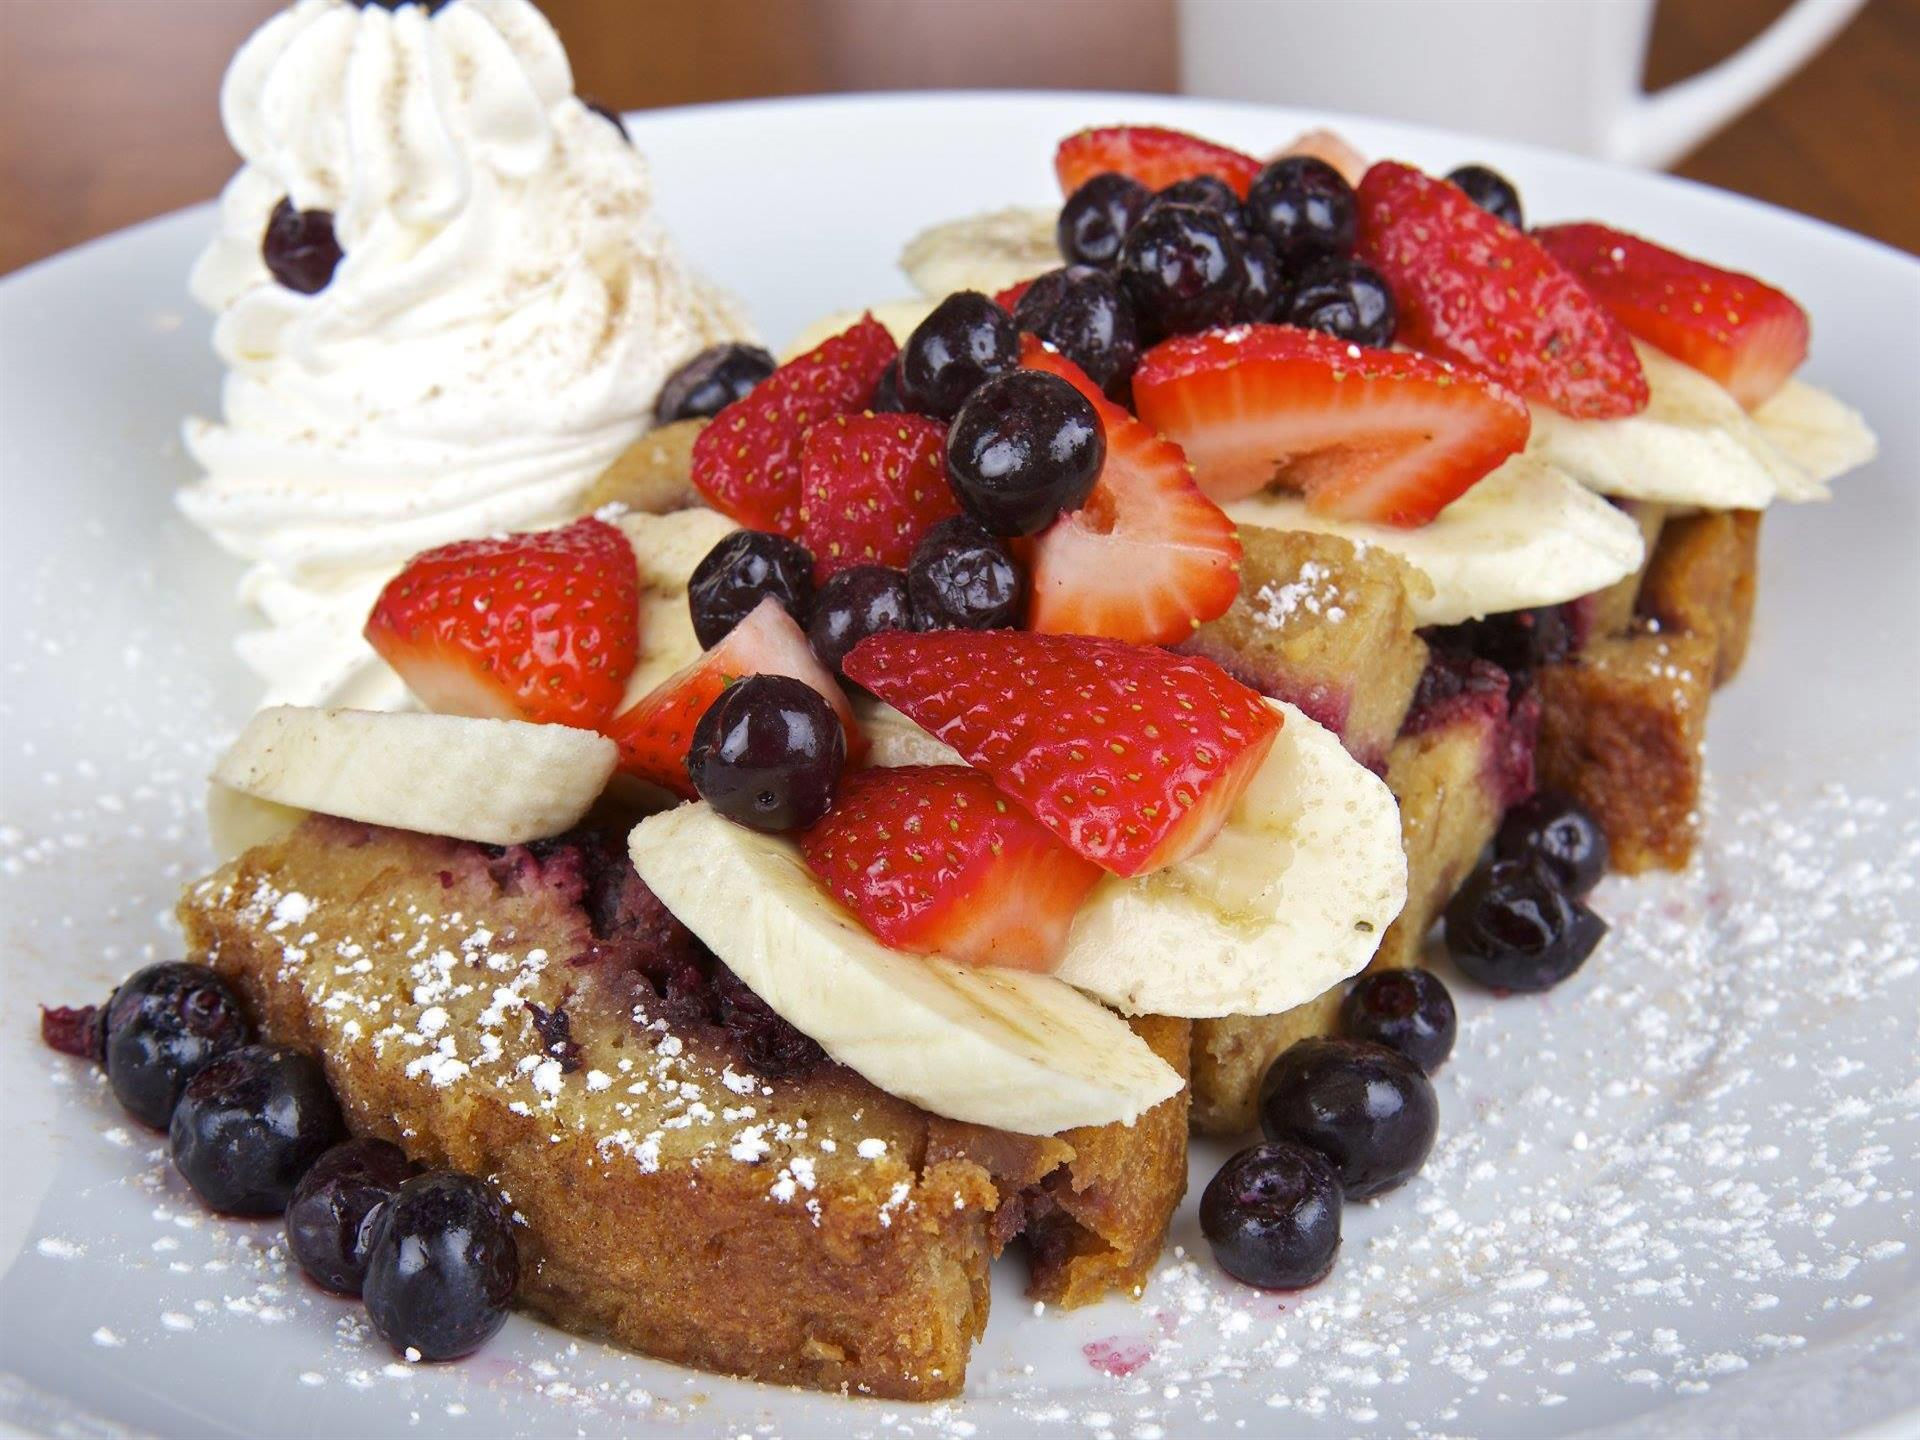 French toast topped with strawberries, bananas, blueberries, whipped cream and powdered sugar.